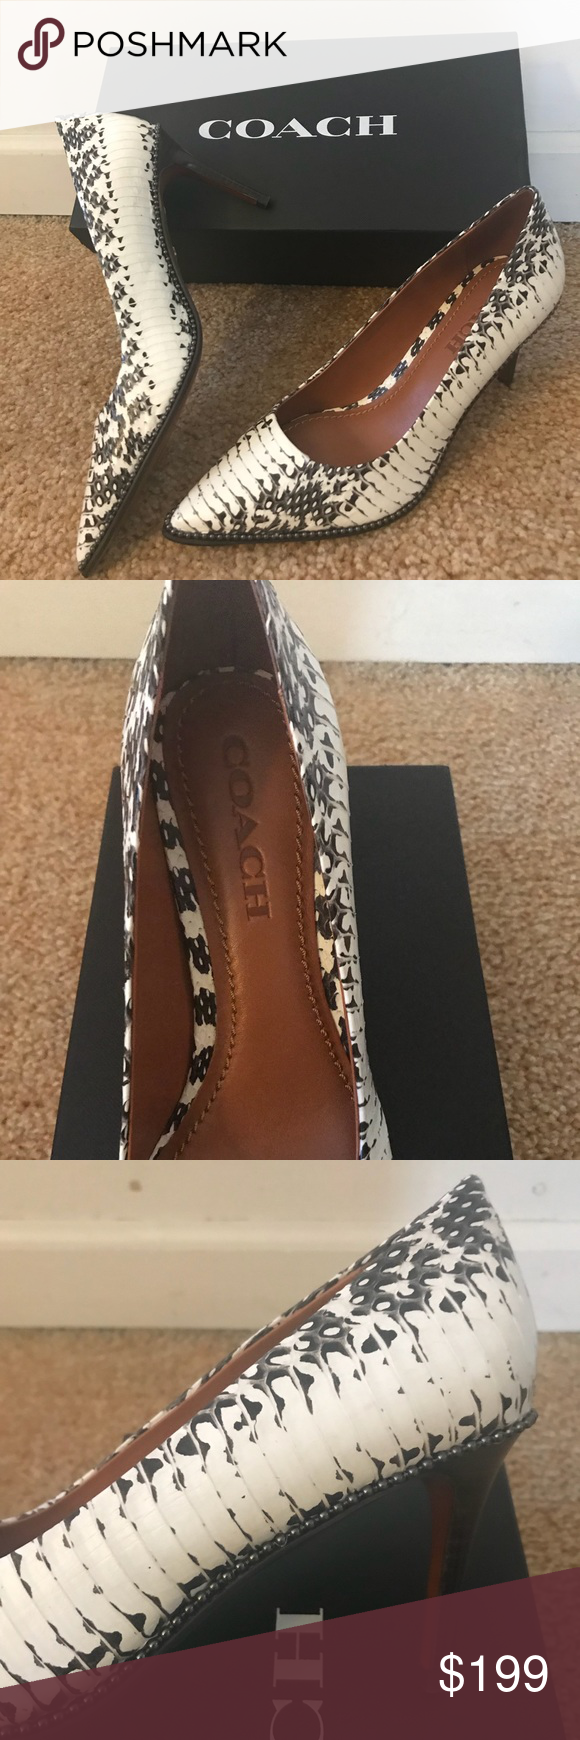 "a7a23a8d839 COACH Beadchain Pump Snake Skin NIB COACH Bead Chain Heel - Snake Skin -  Leather lining and foot bed - Leather outsole - 3 1 4"" Stacked Wooden Heel  Retail ..."